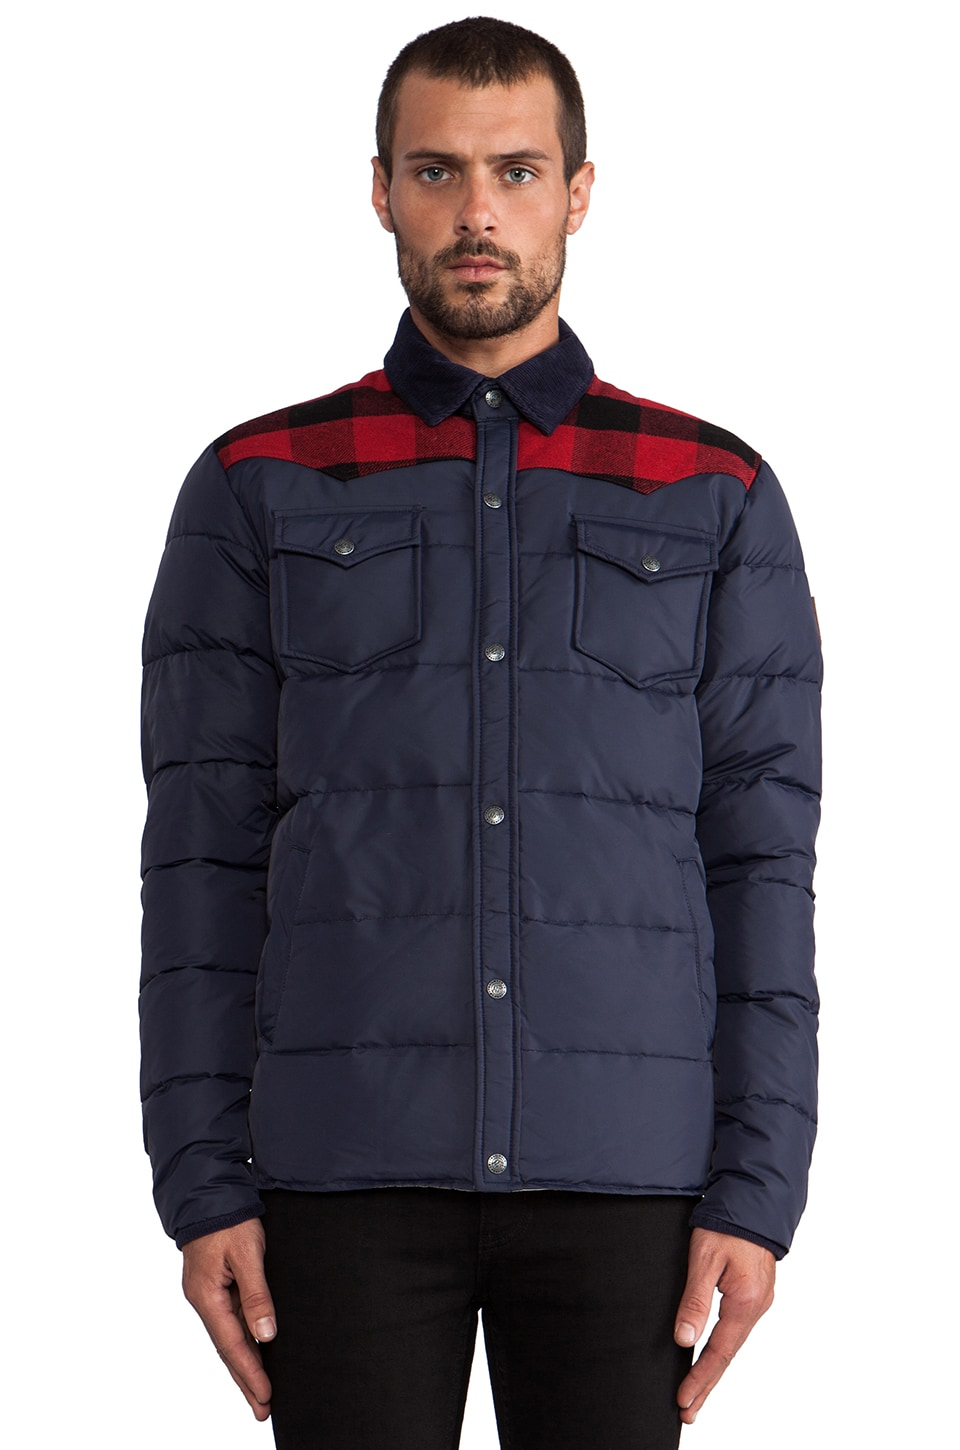 Penfield Rockford Lightweight Insulated Jacket in Navy